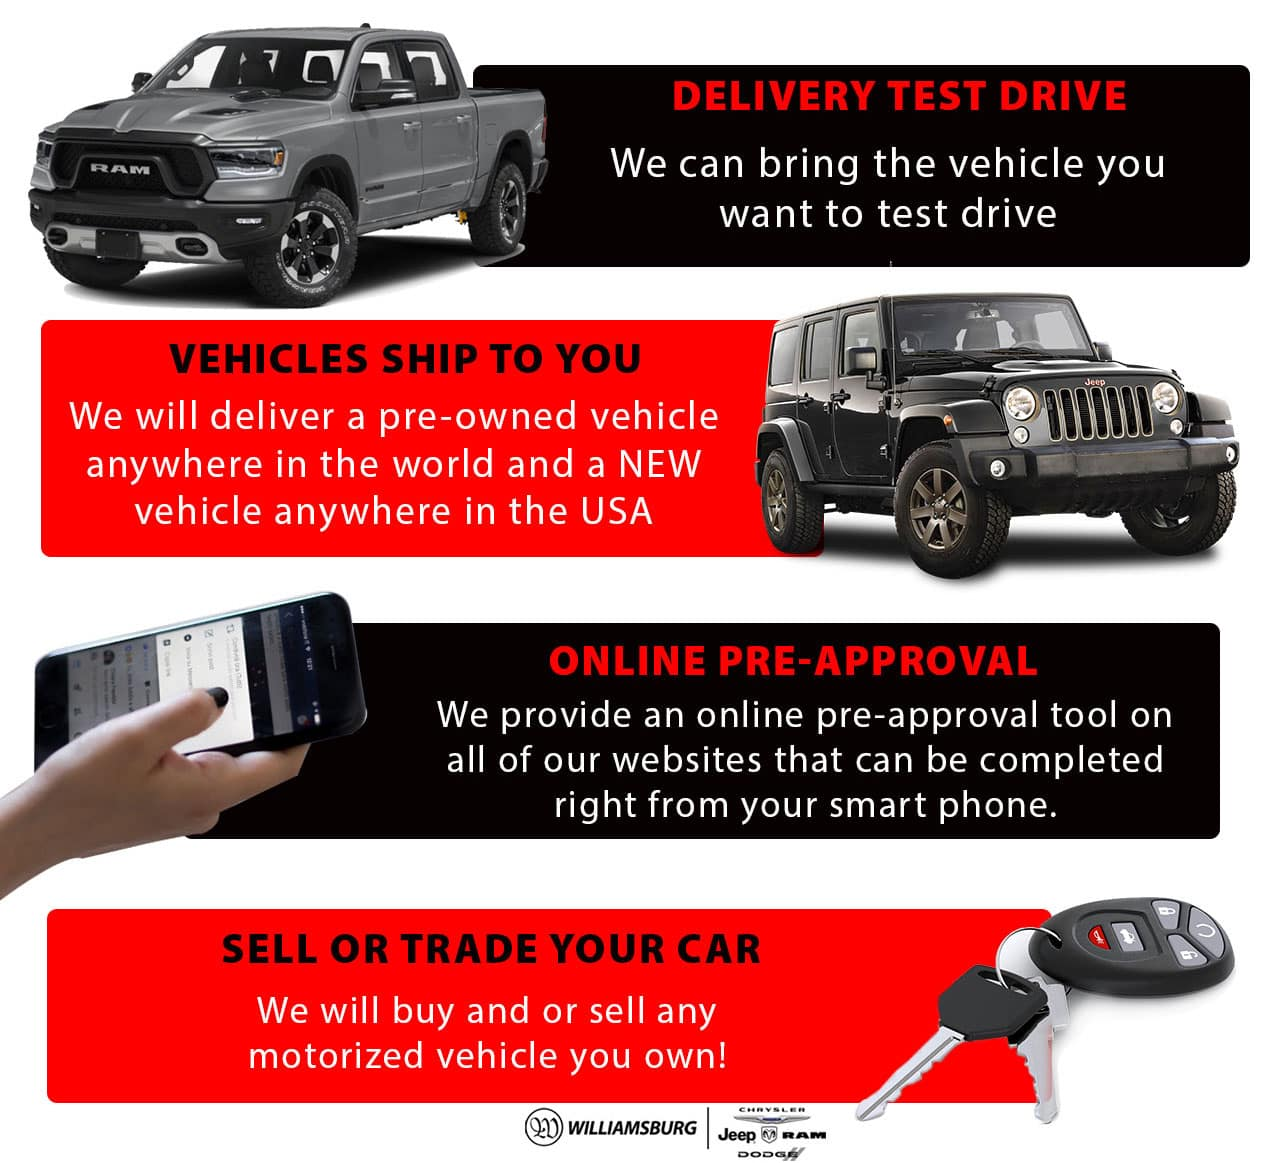 Williamsburg Way - Delivery Test Drive, Vehicles Ship To You, Online Pre-Approval, Sell or Trade Your Car